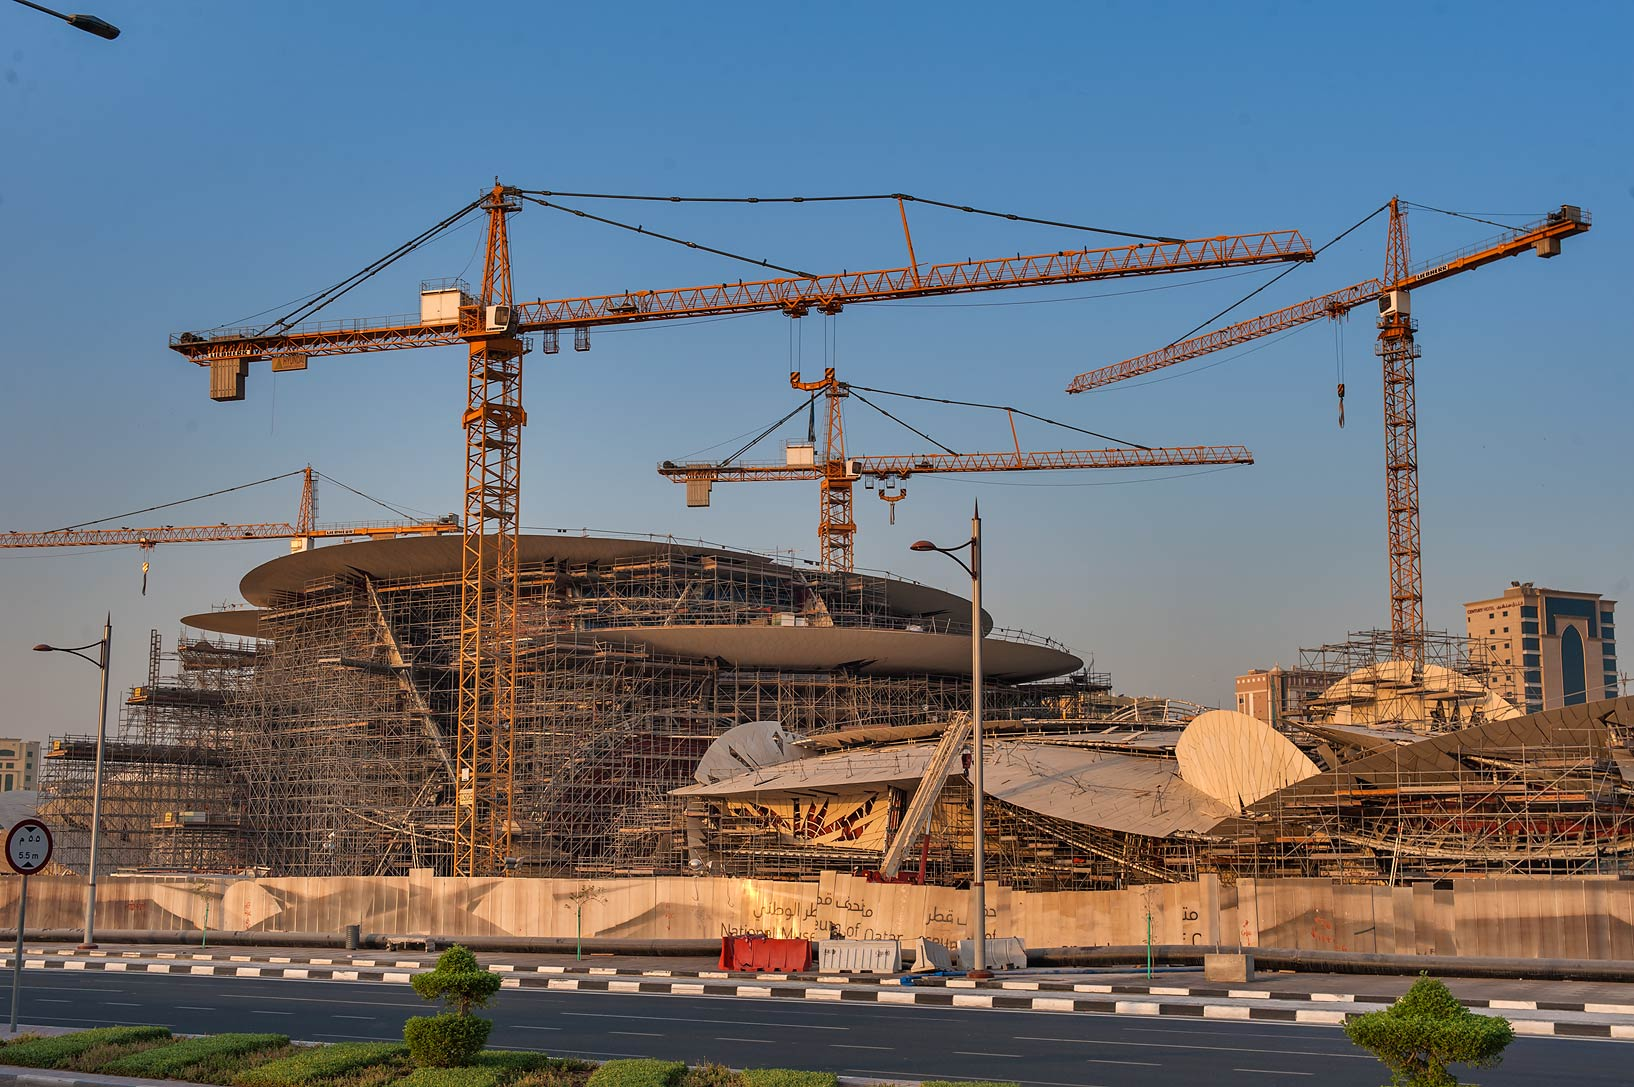 Desert rose like structure of National Museum, view from Corniche. Doha, Qatar